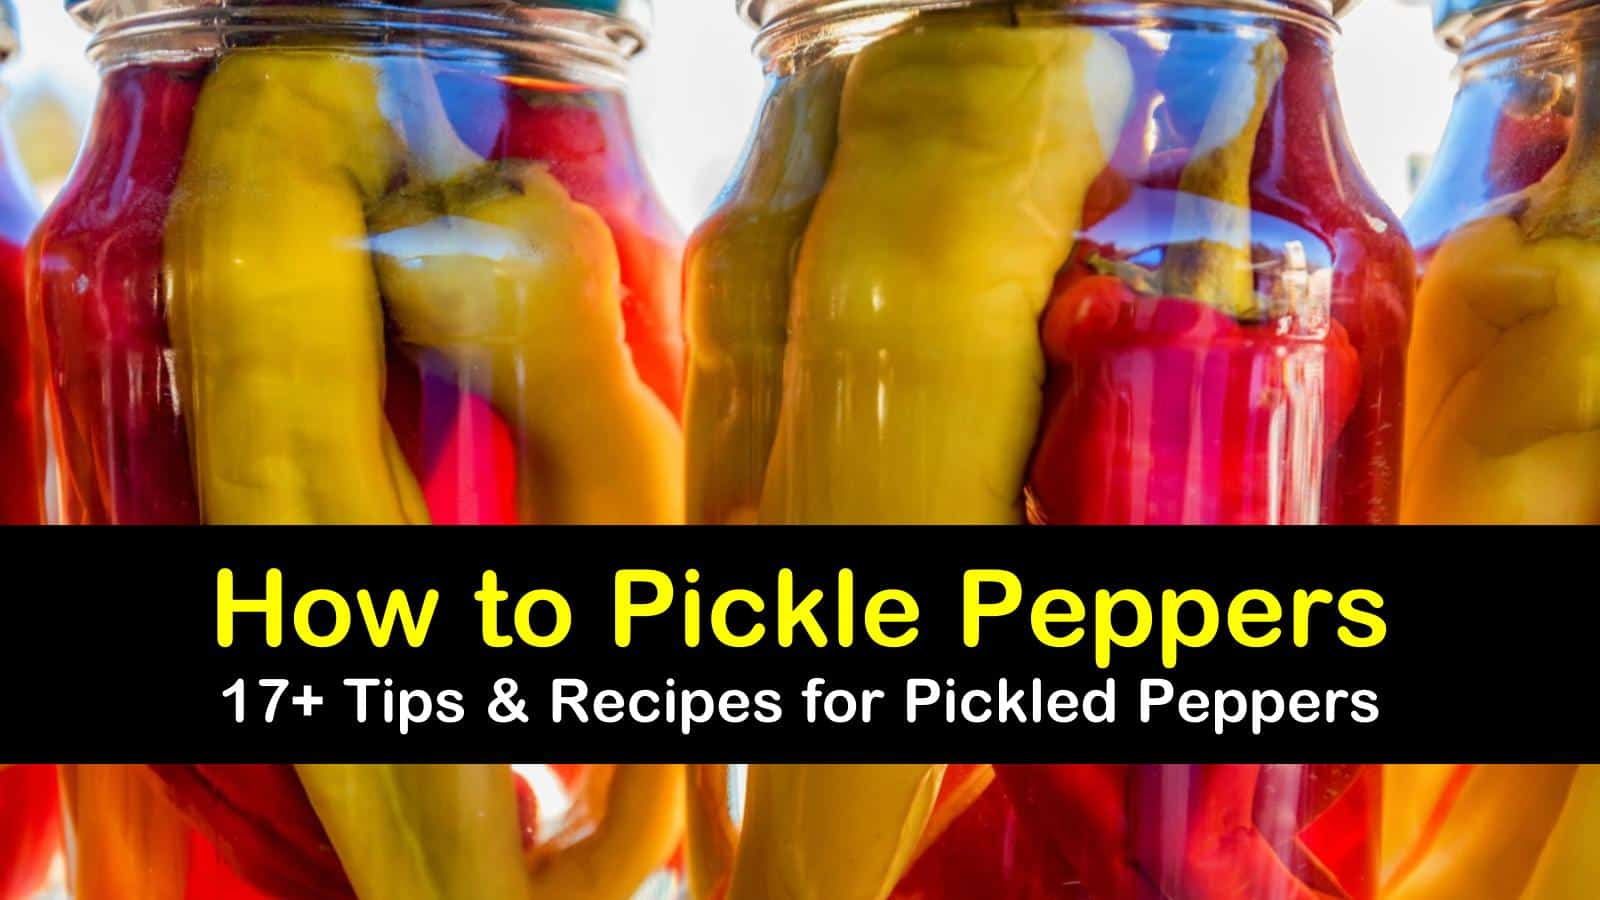 how to pickle peppers titleimg1